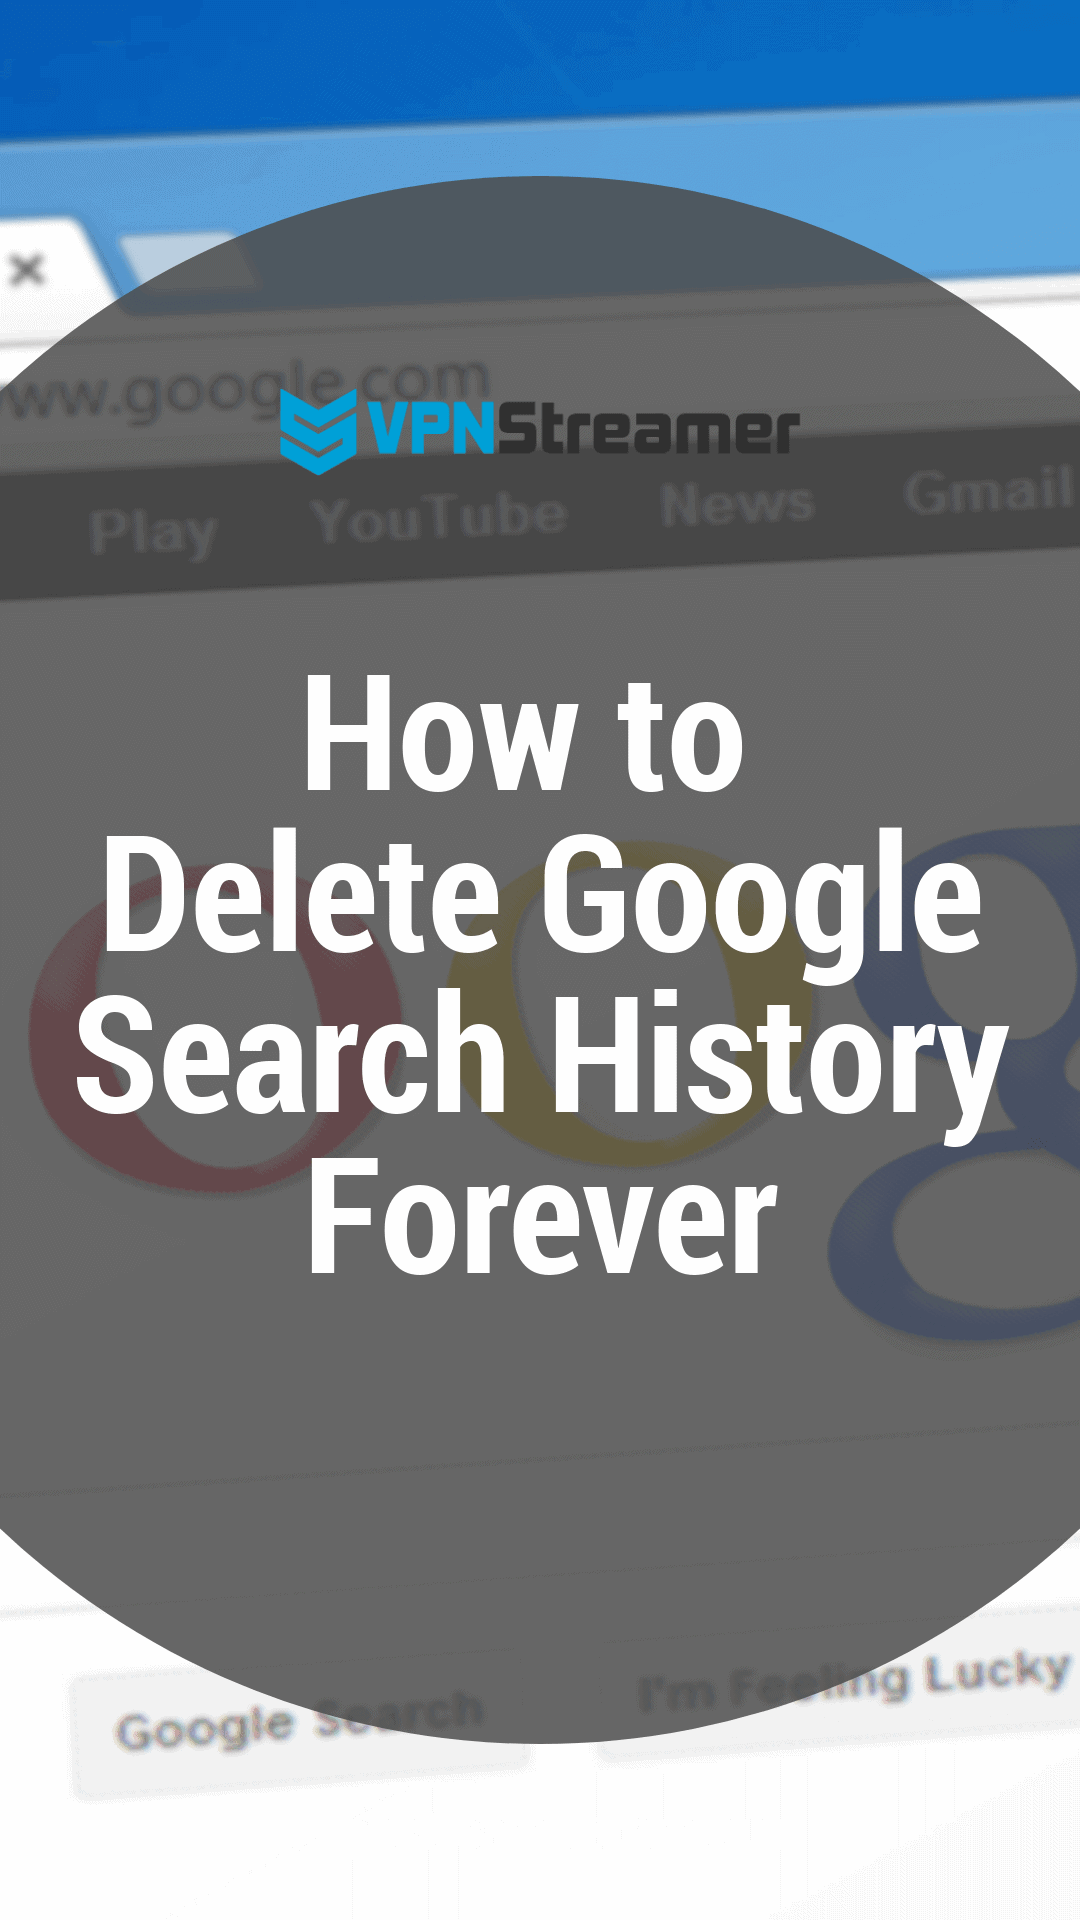 How to Delete Google Search History Forever